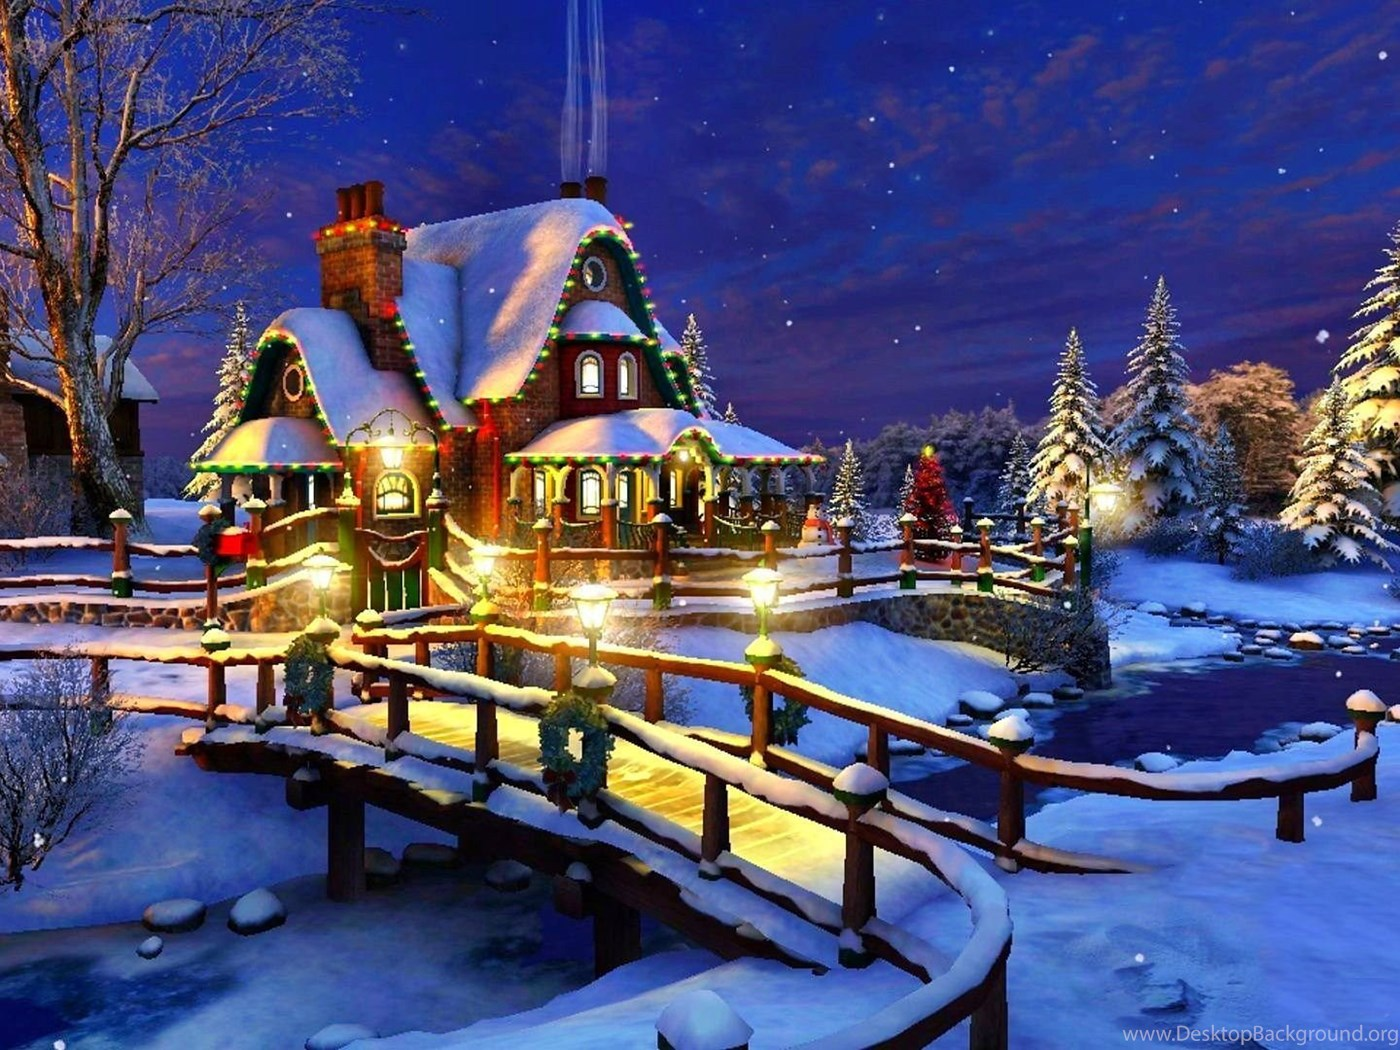 Christmas Wallpapers HD 1920x1080 Free Wallpapers Full Hd 1080p ... Desktop Background